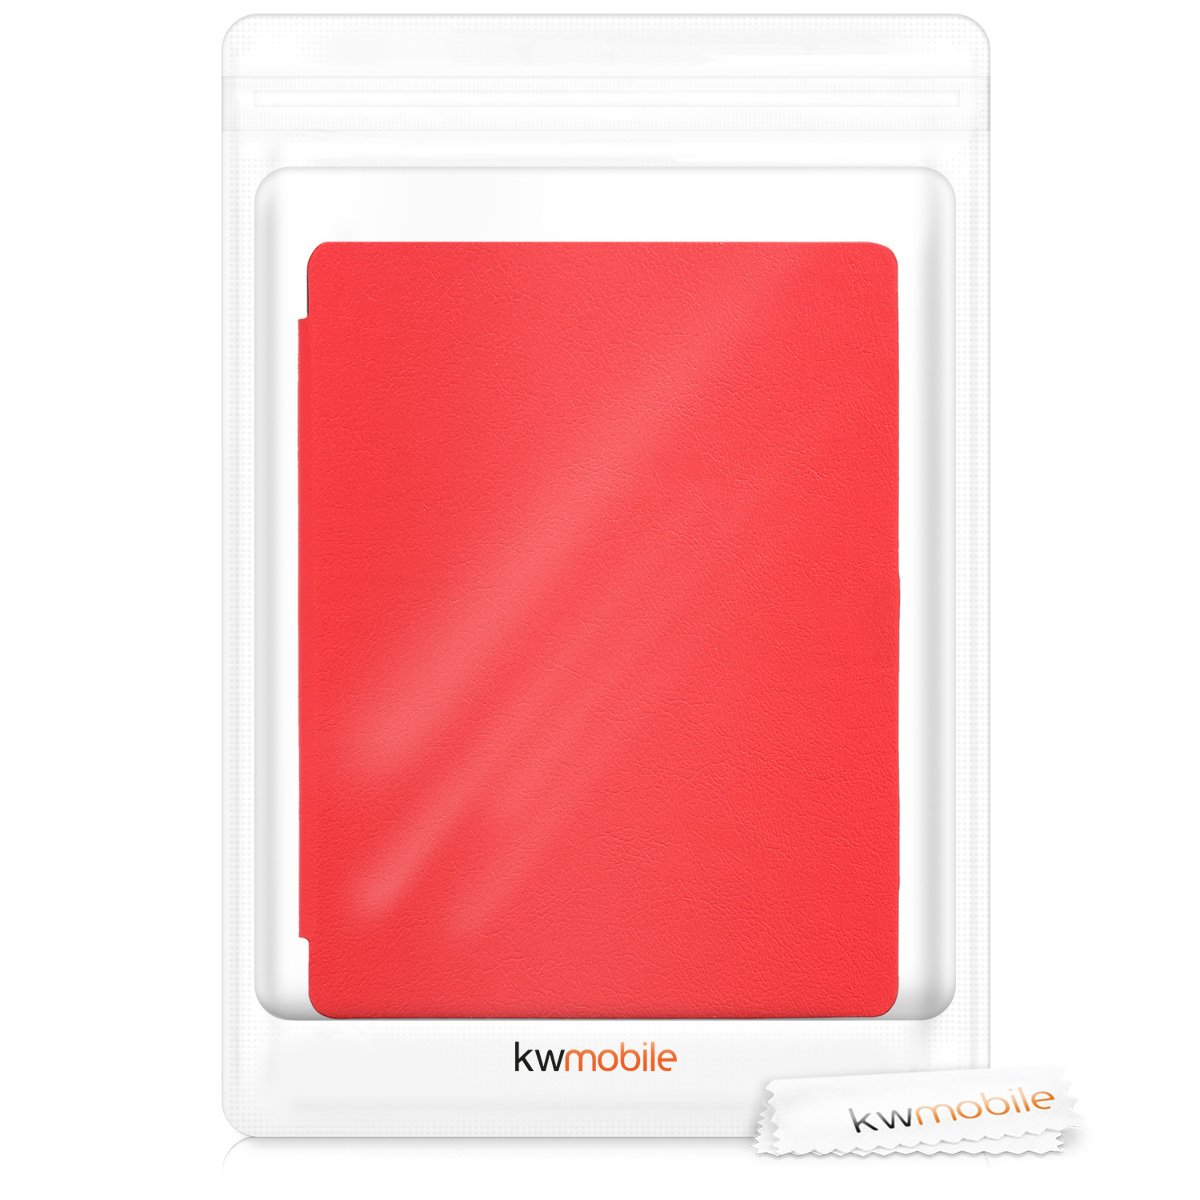 kwmobile Flip cover case for Kobo Aura H2O Edition 2 - imitation leather foldable case in red by kwmobile (Image #8)